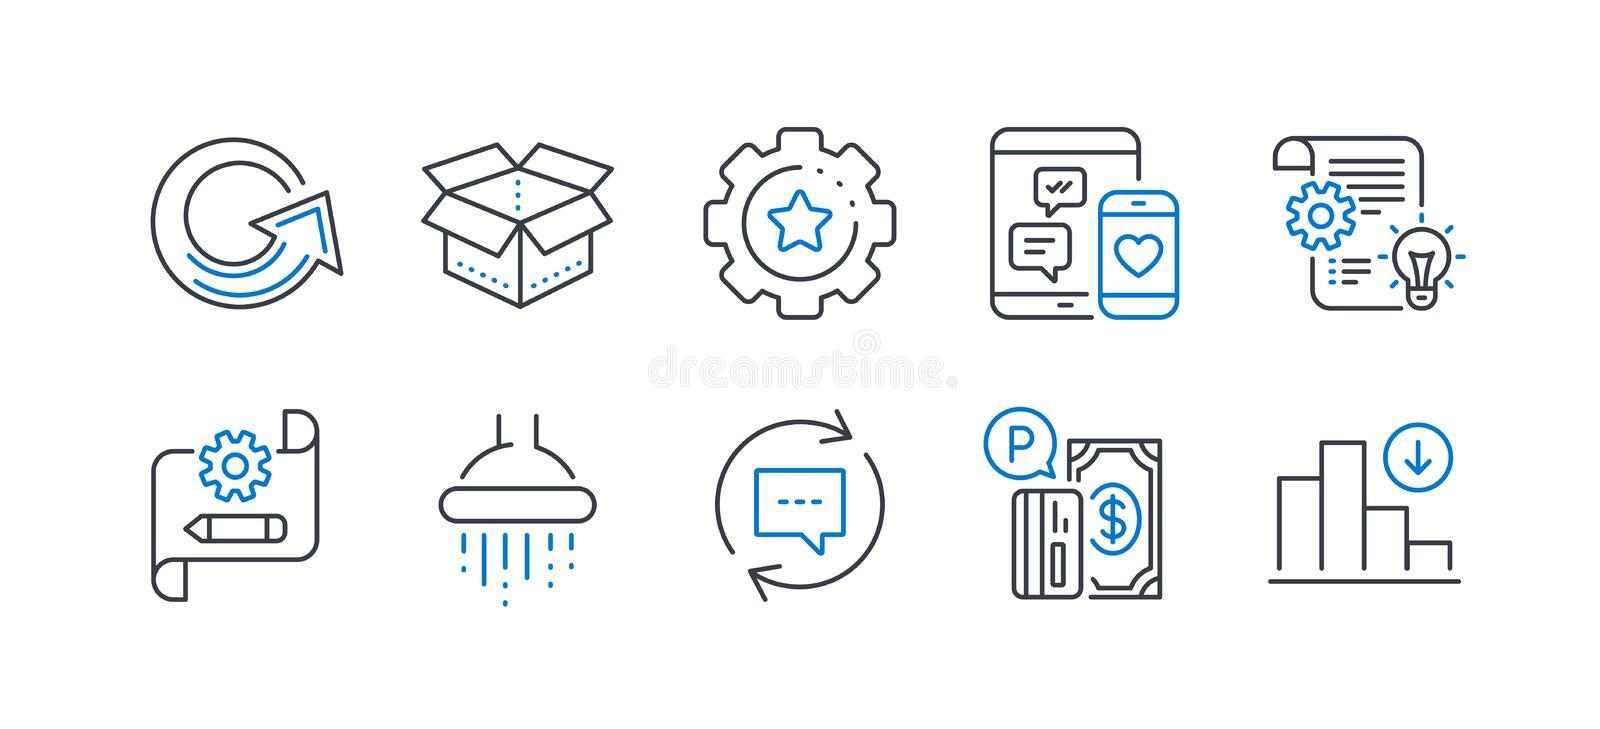 Set of Technology icons, such as Settings gear, Social media, Open box 矢量 向量例证